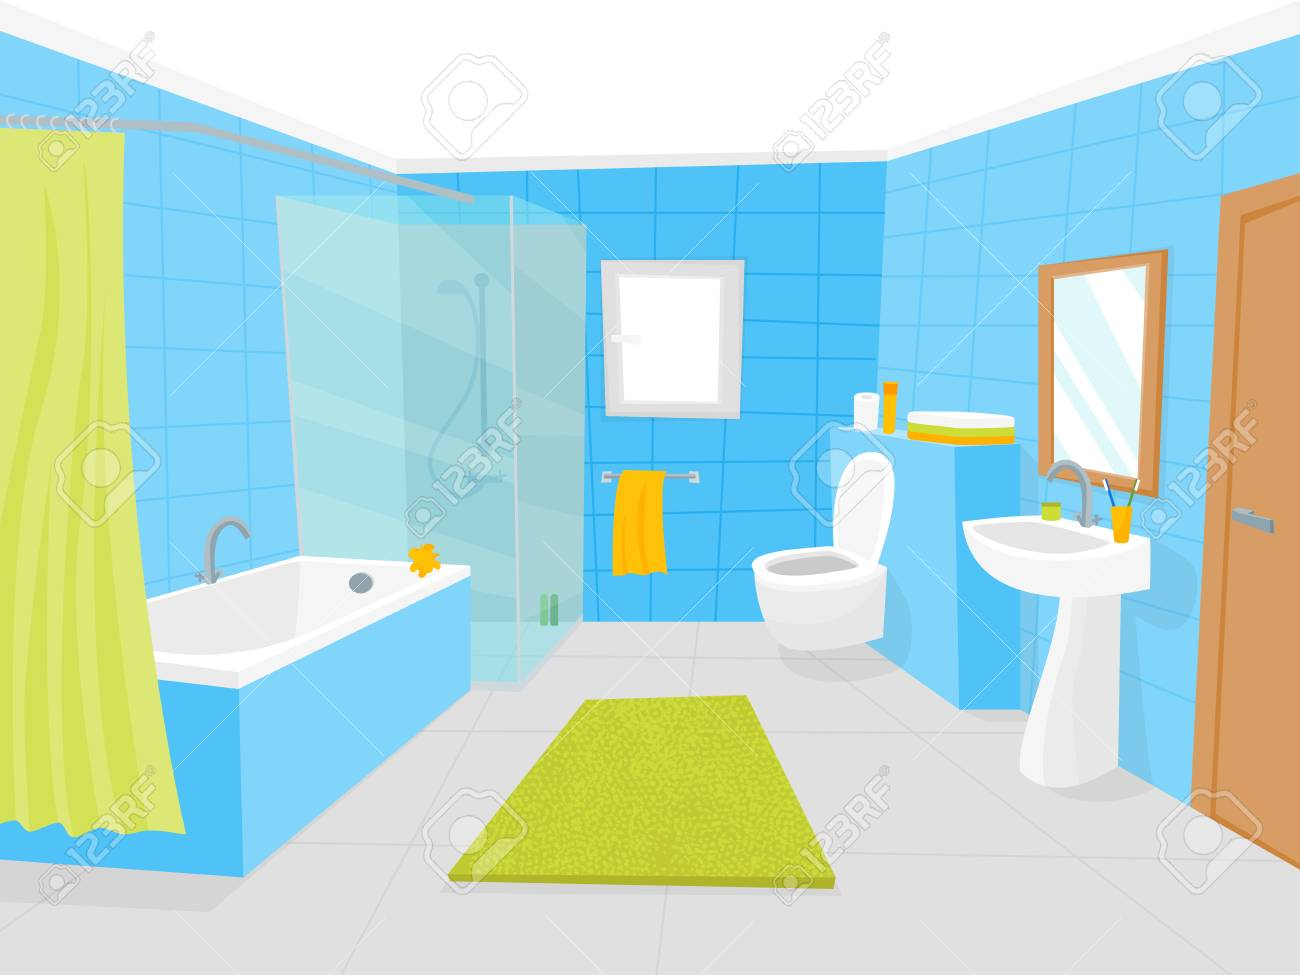 Cartoon Bathroom Interior With Furniture Card Poster Vector Royalty Free Cliparts Vectors And Stock Illustration Image 97677696